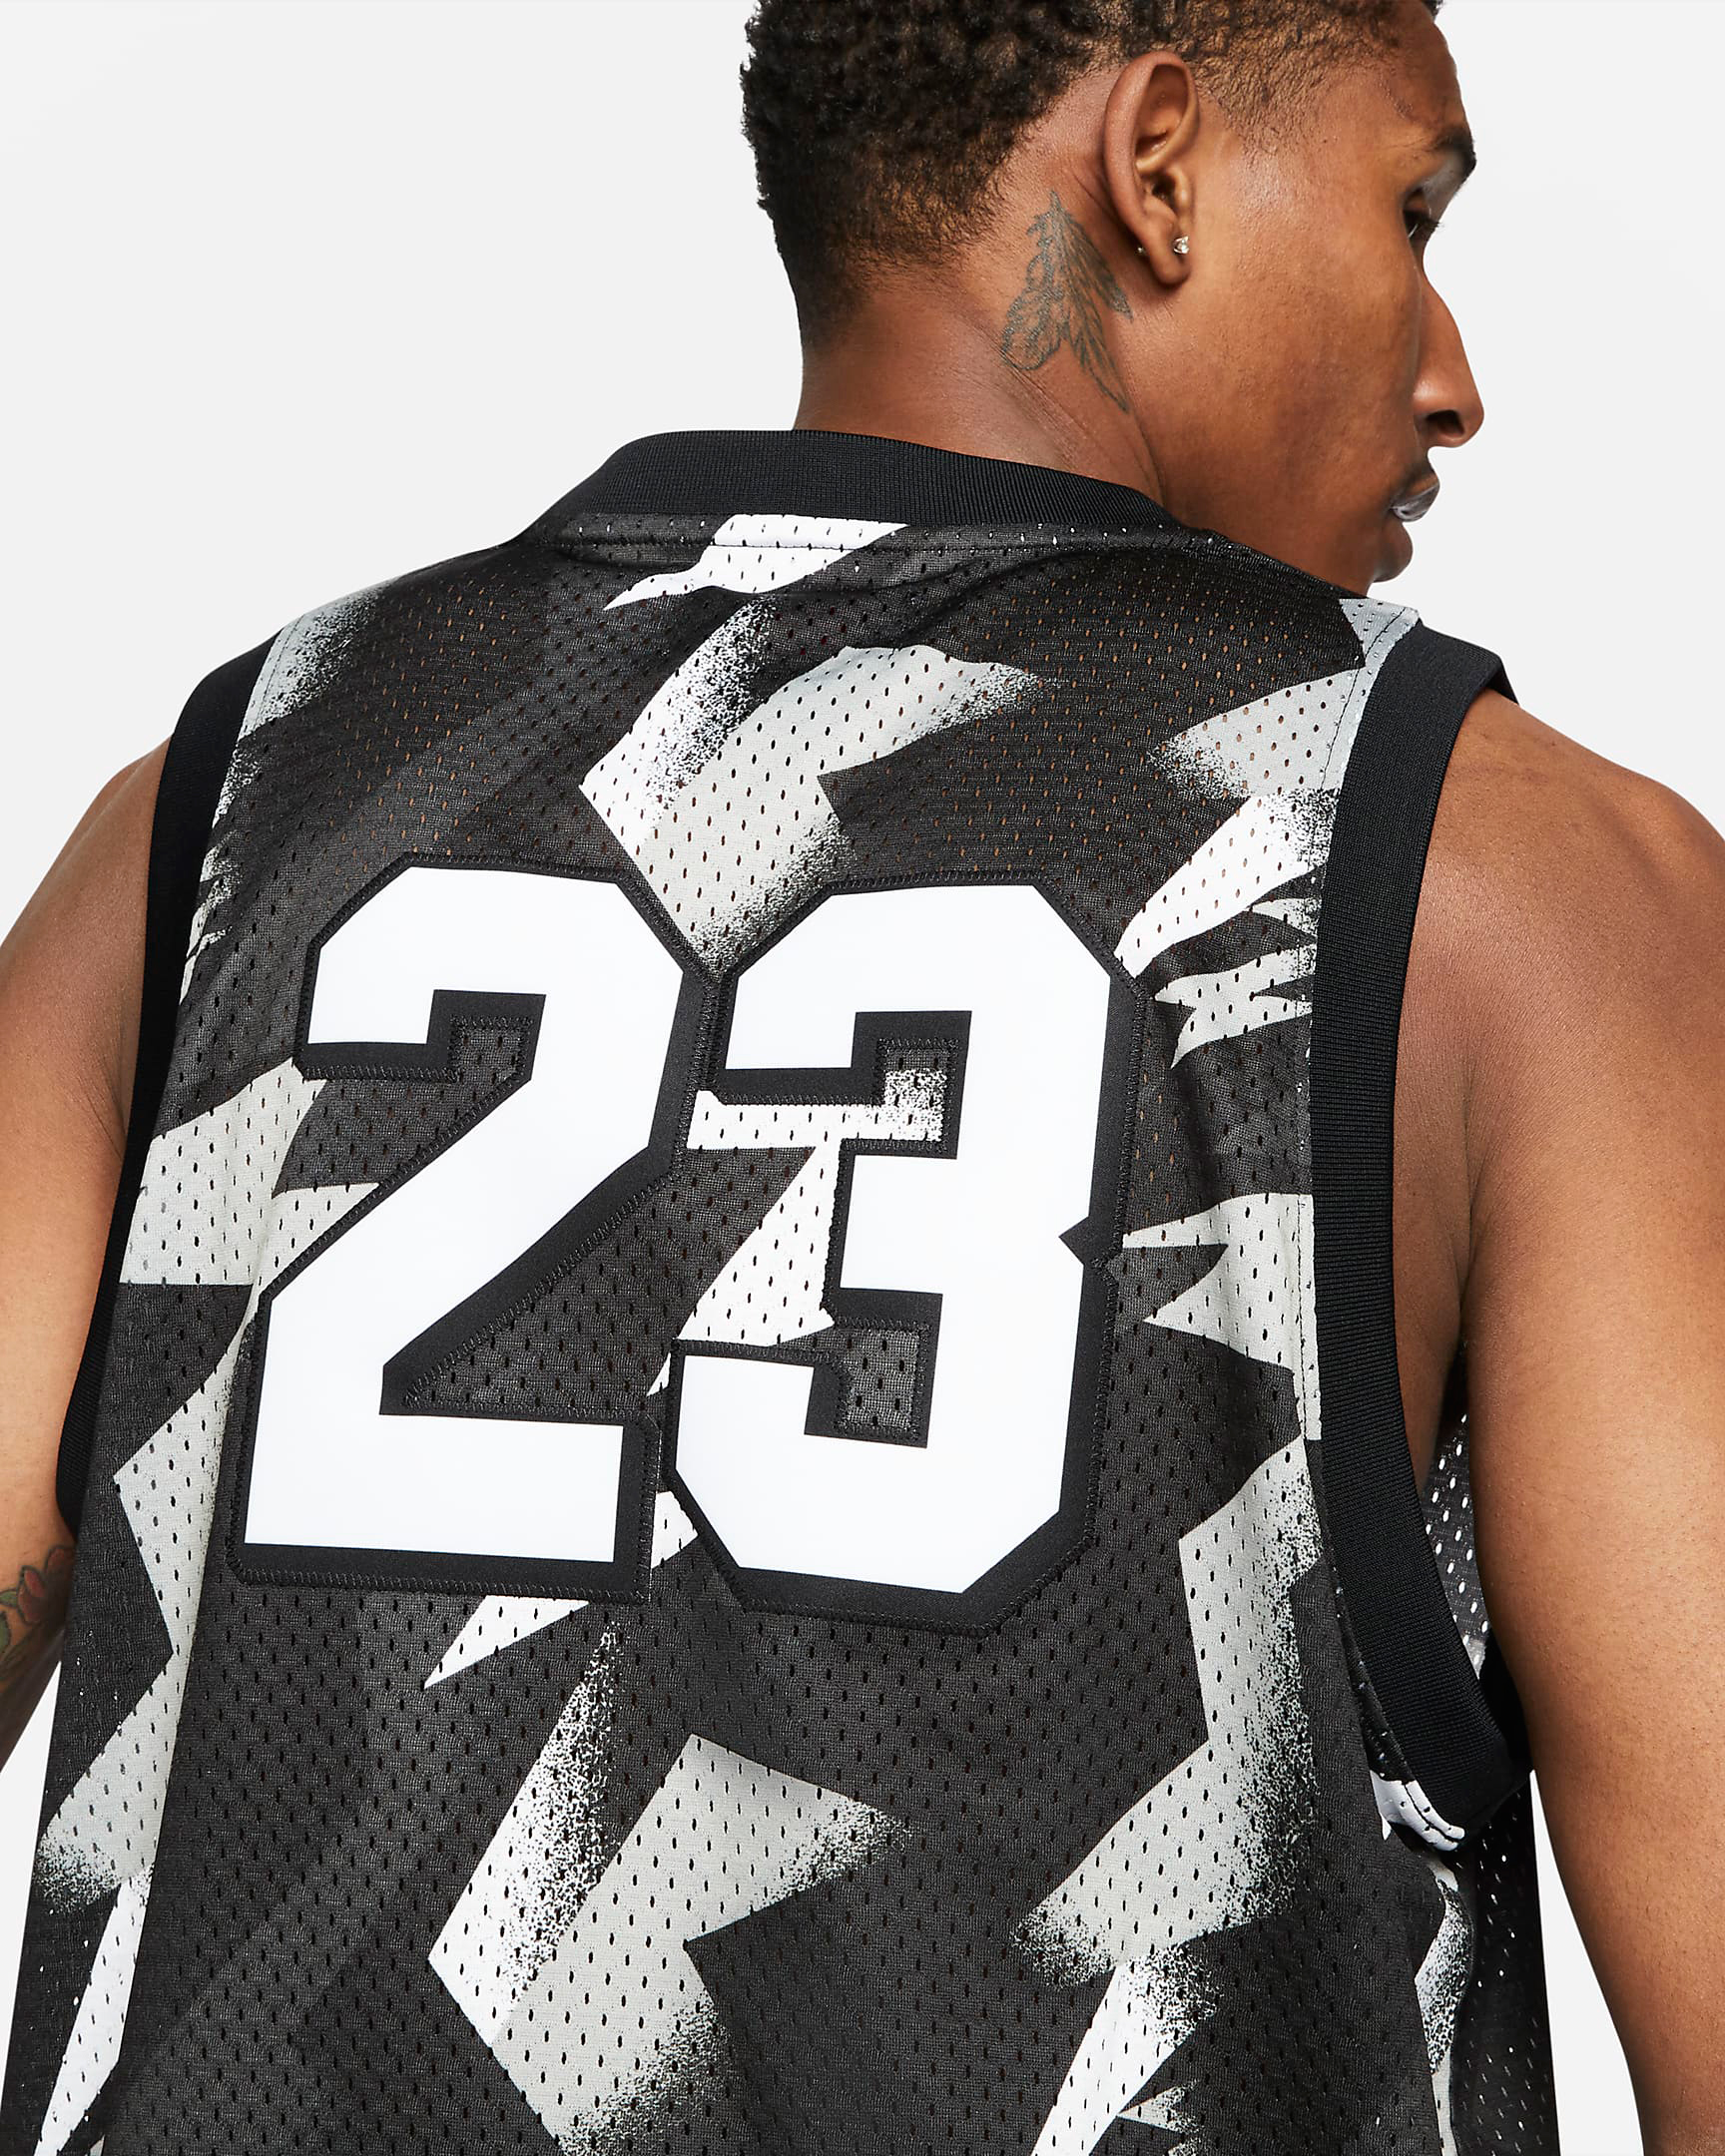 jordan-jumpman-printed-jersey-black-white-red-2